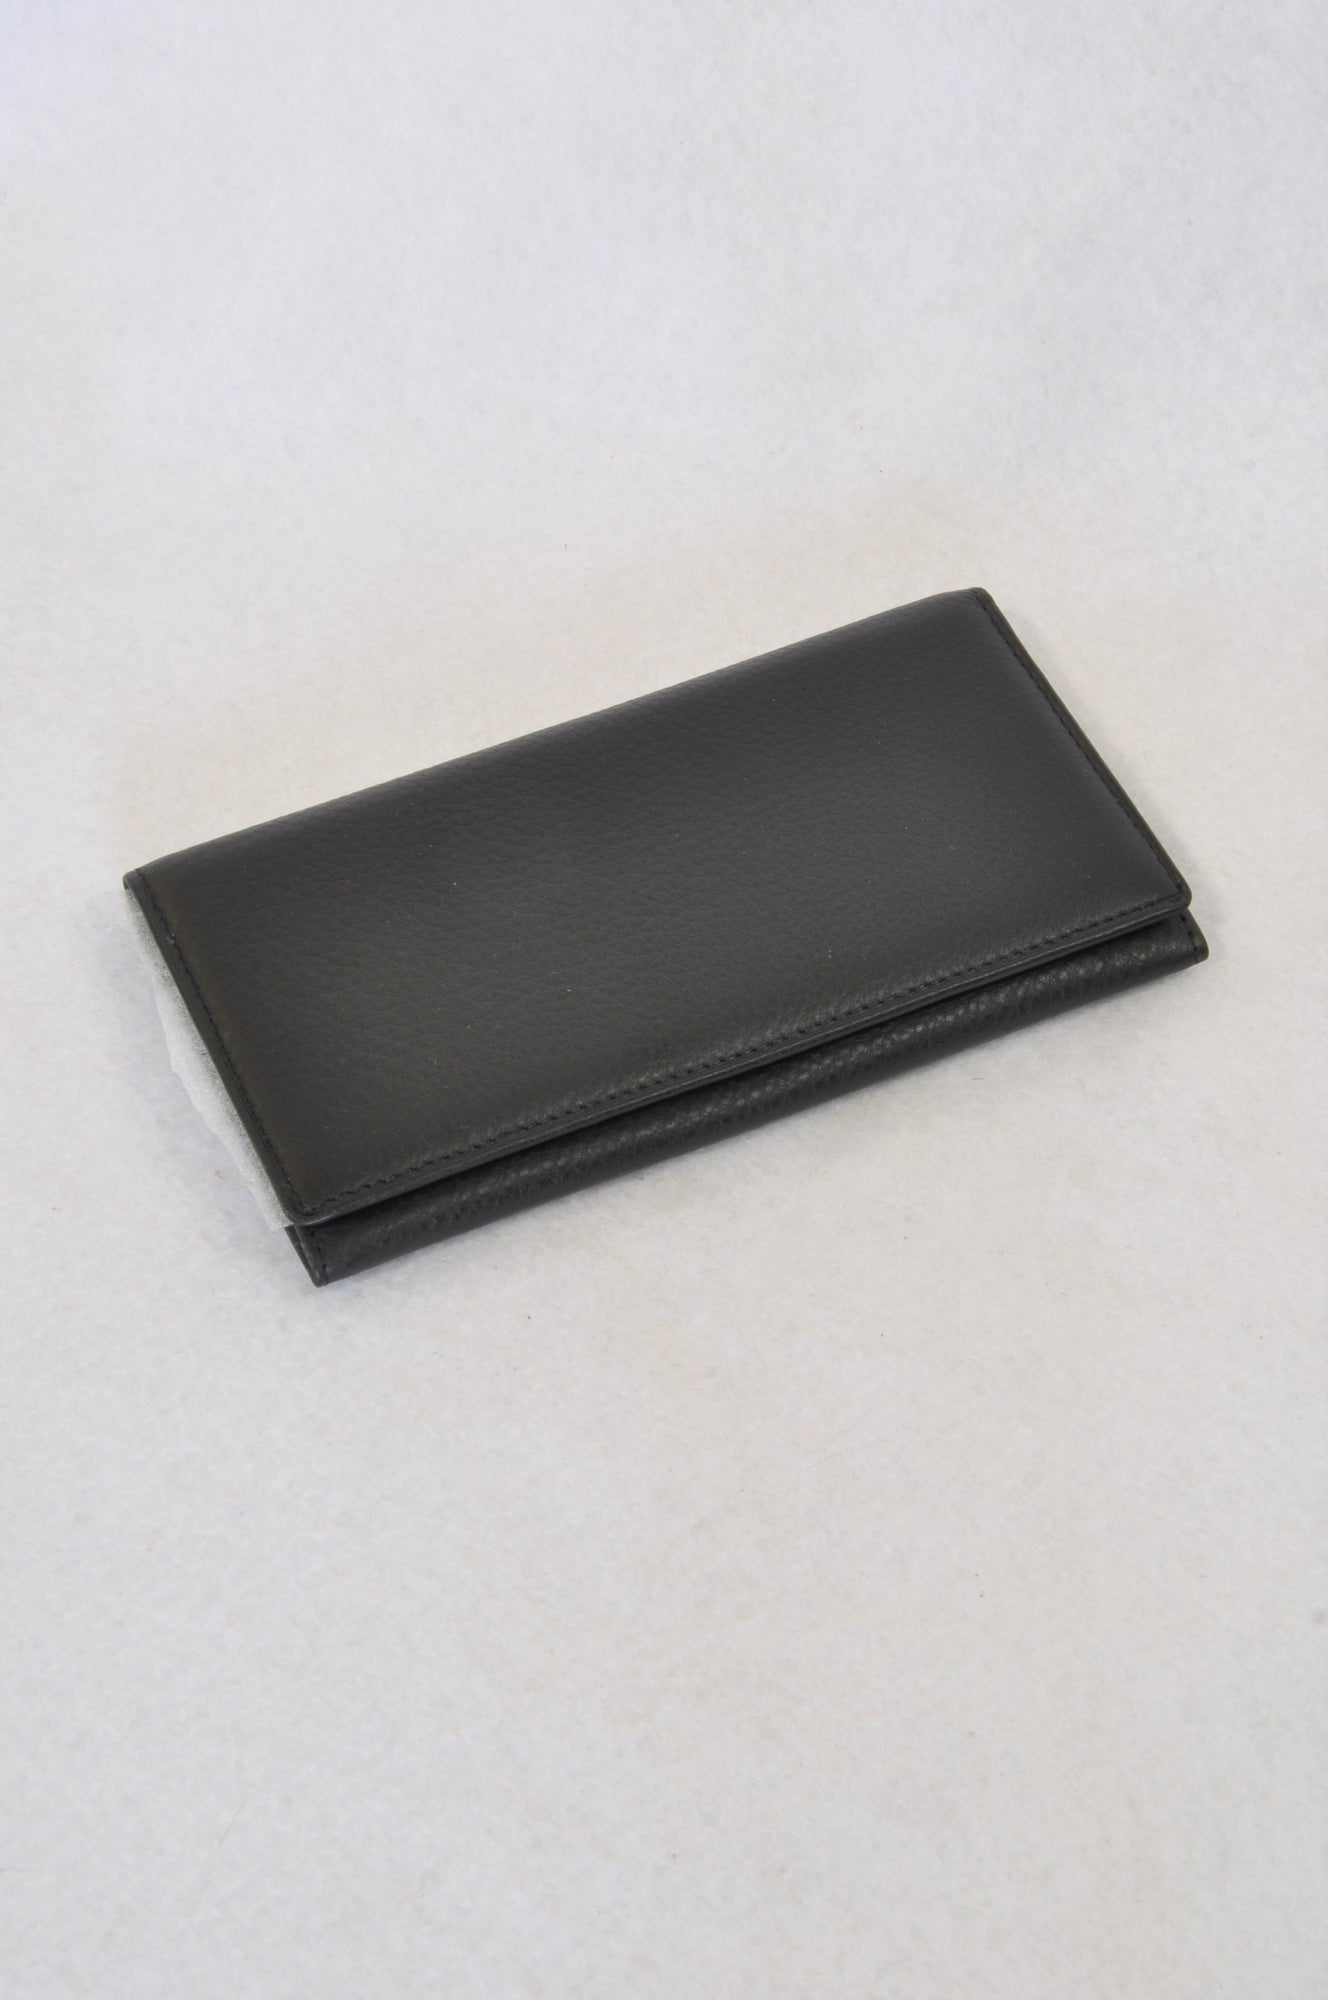 New Unbranded Black Basic Leather Wallet Accessory Women